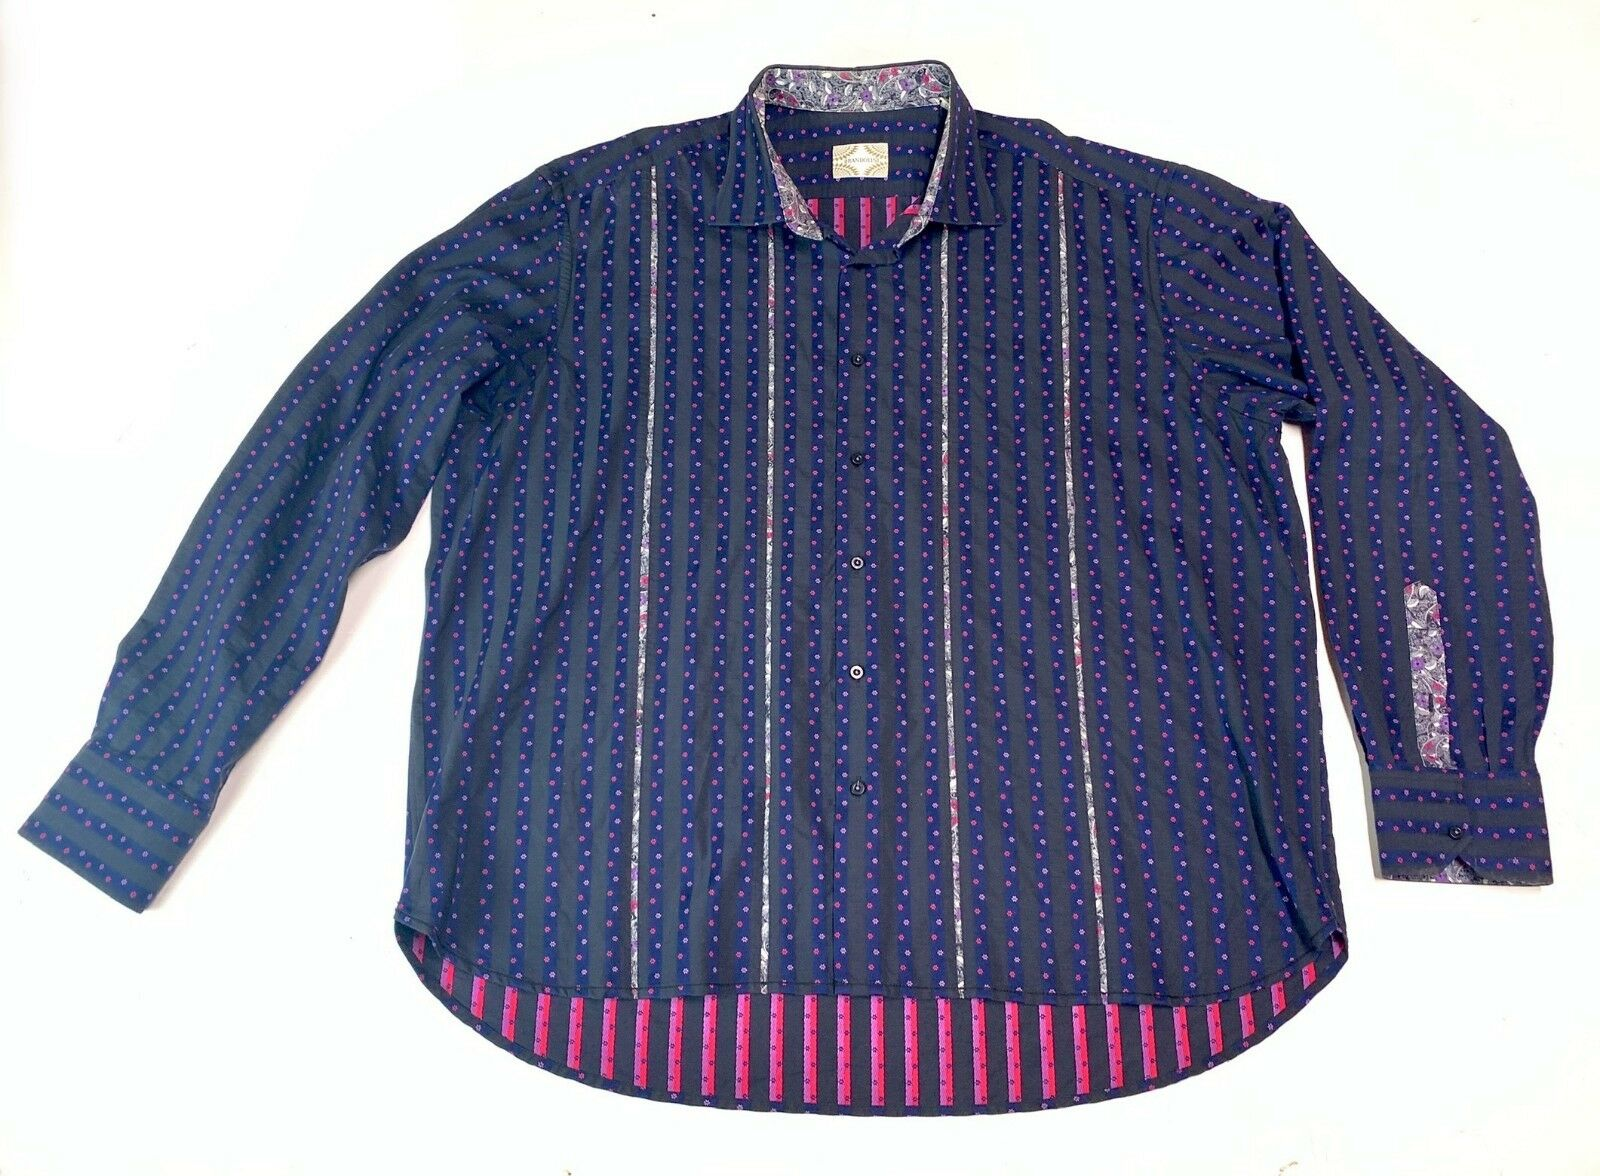 Awesome Brandolini 3XL  Textured  Dark bluee Striped Long Sleeve Button Up Shirt